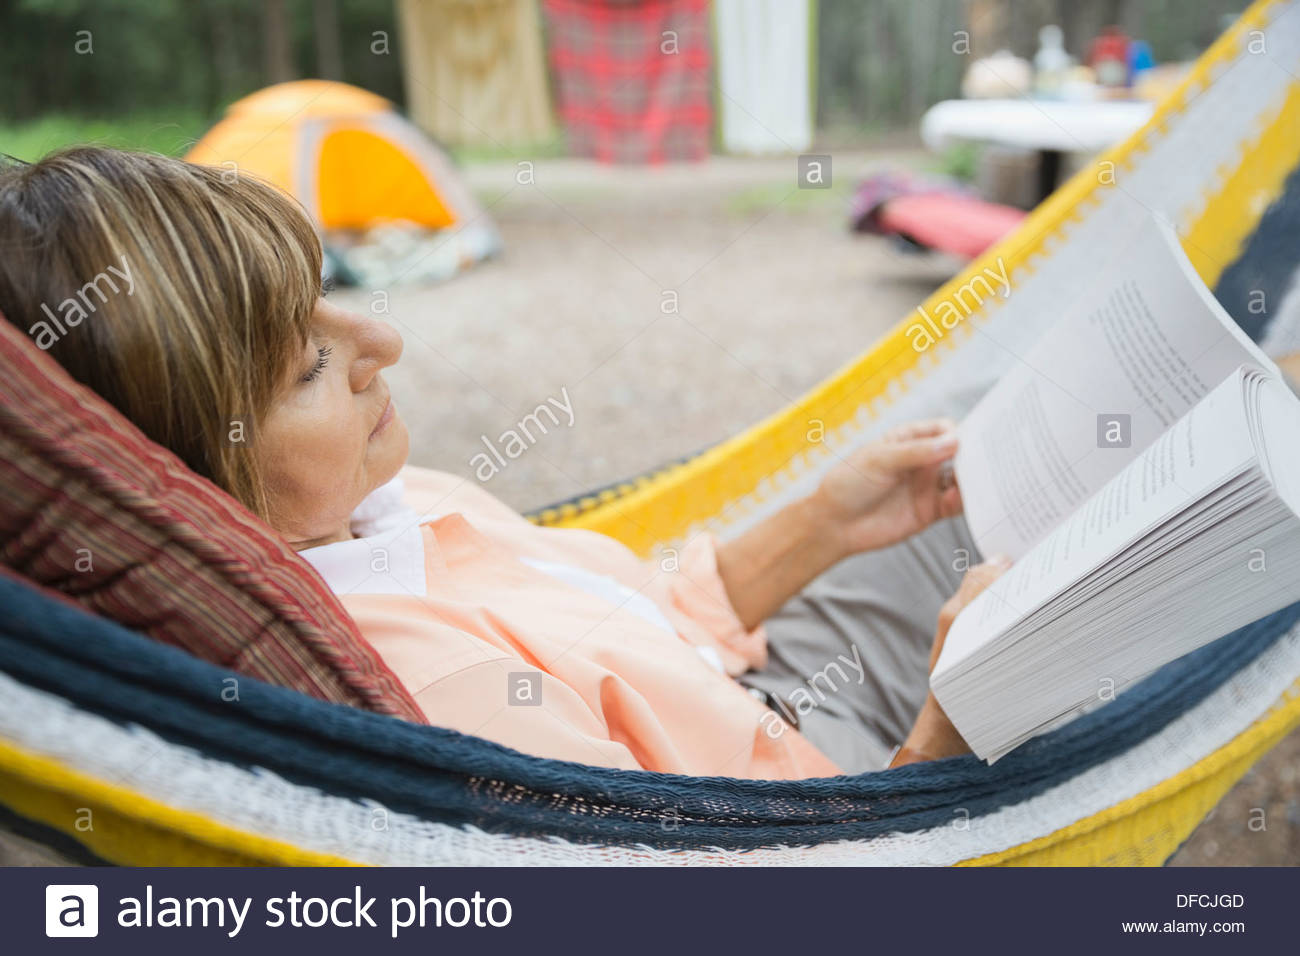 Relaxed senior woman reading book in hammock at campsite - Stock Image